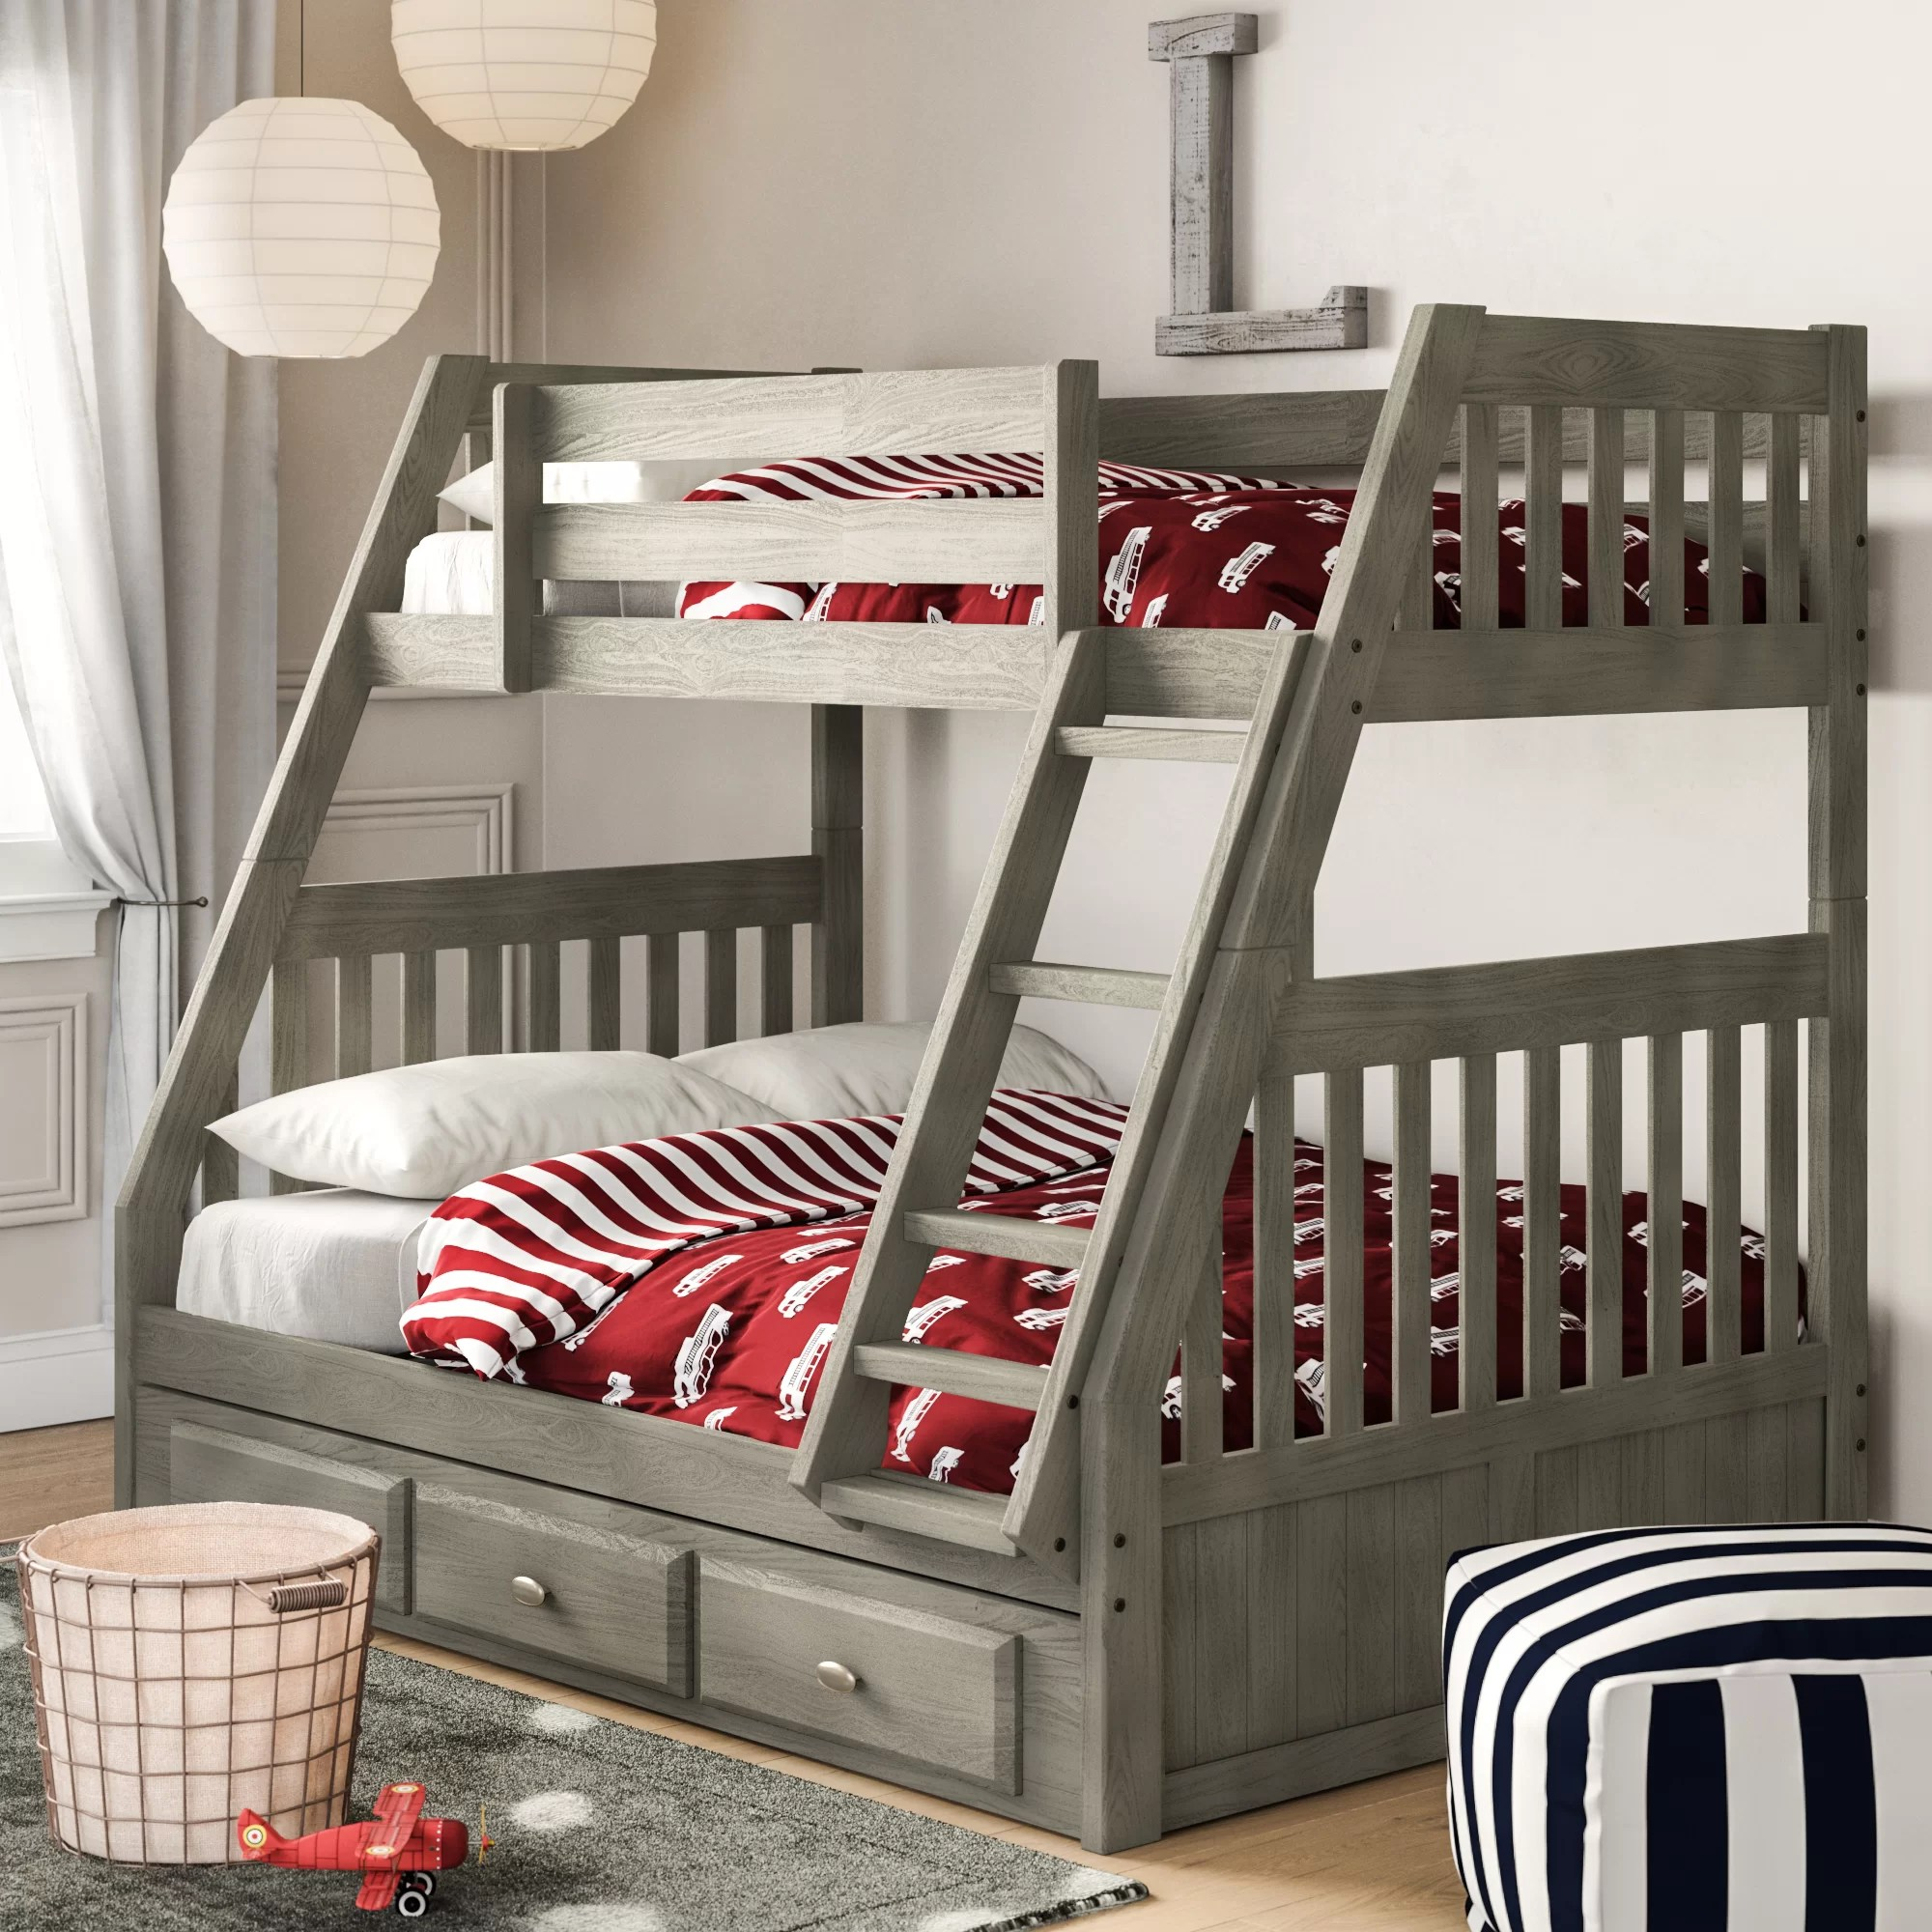 Snooze Bunk Beds Willis Twin Over Full Bunk Bed With Drawers